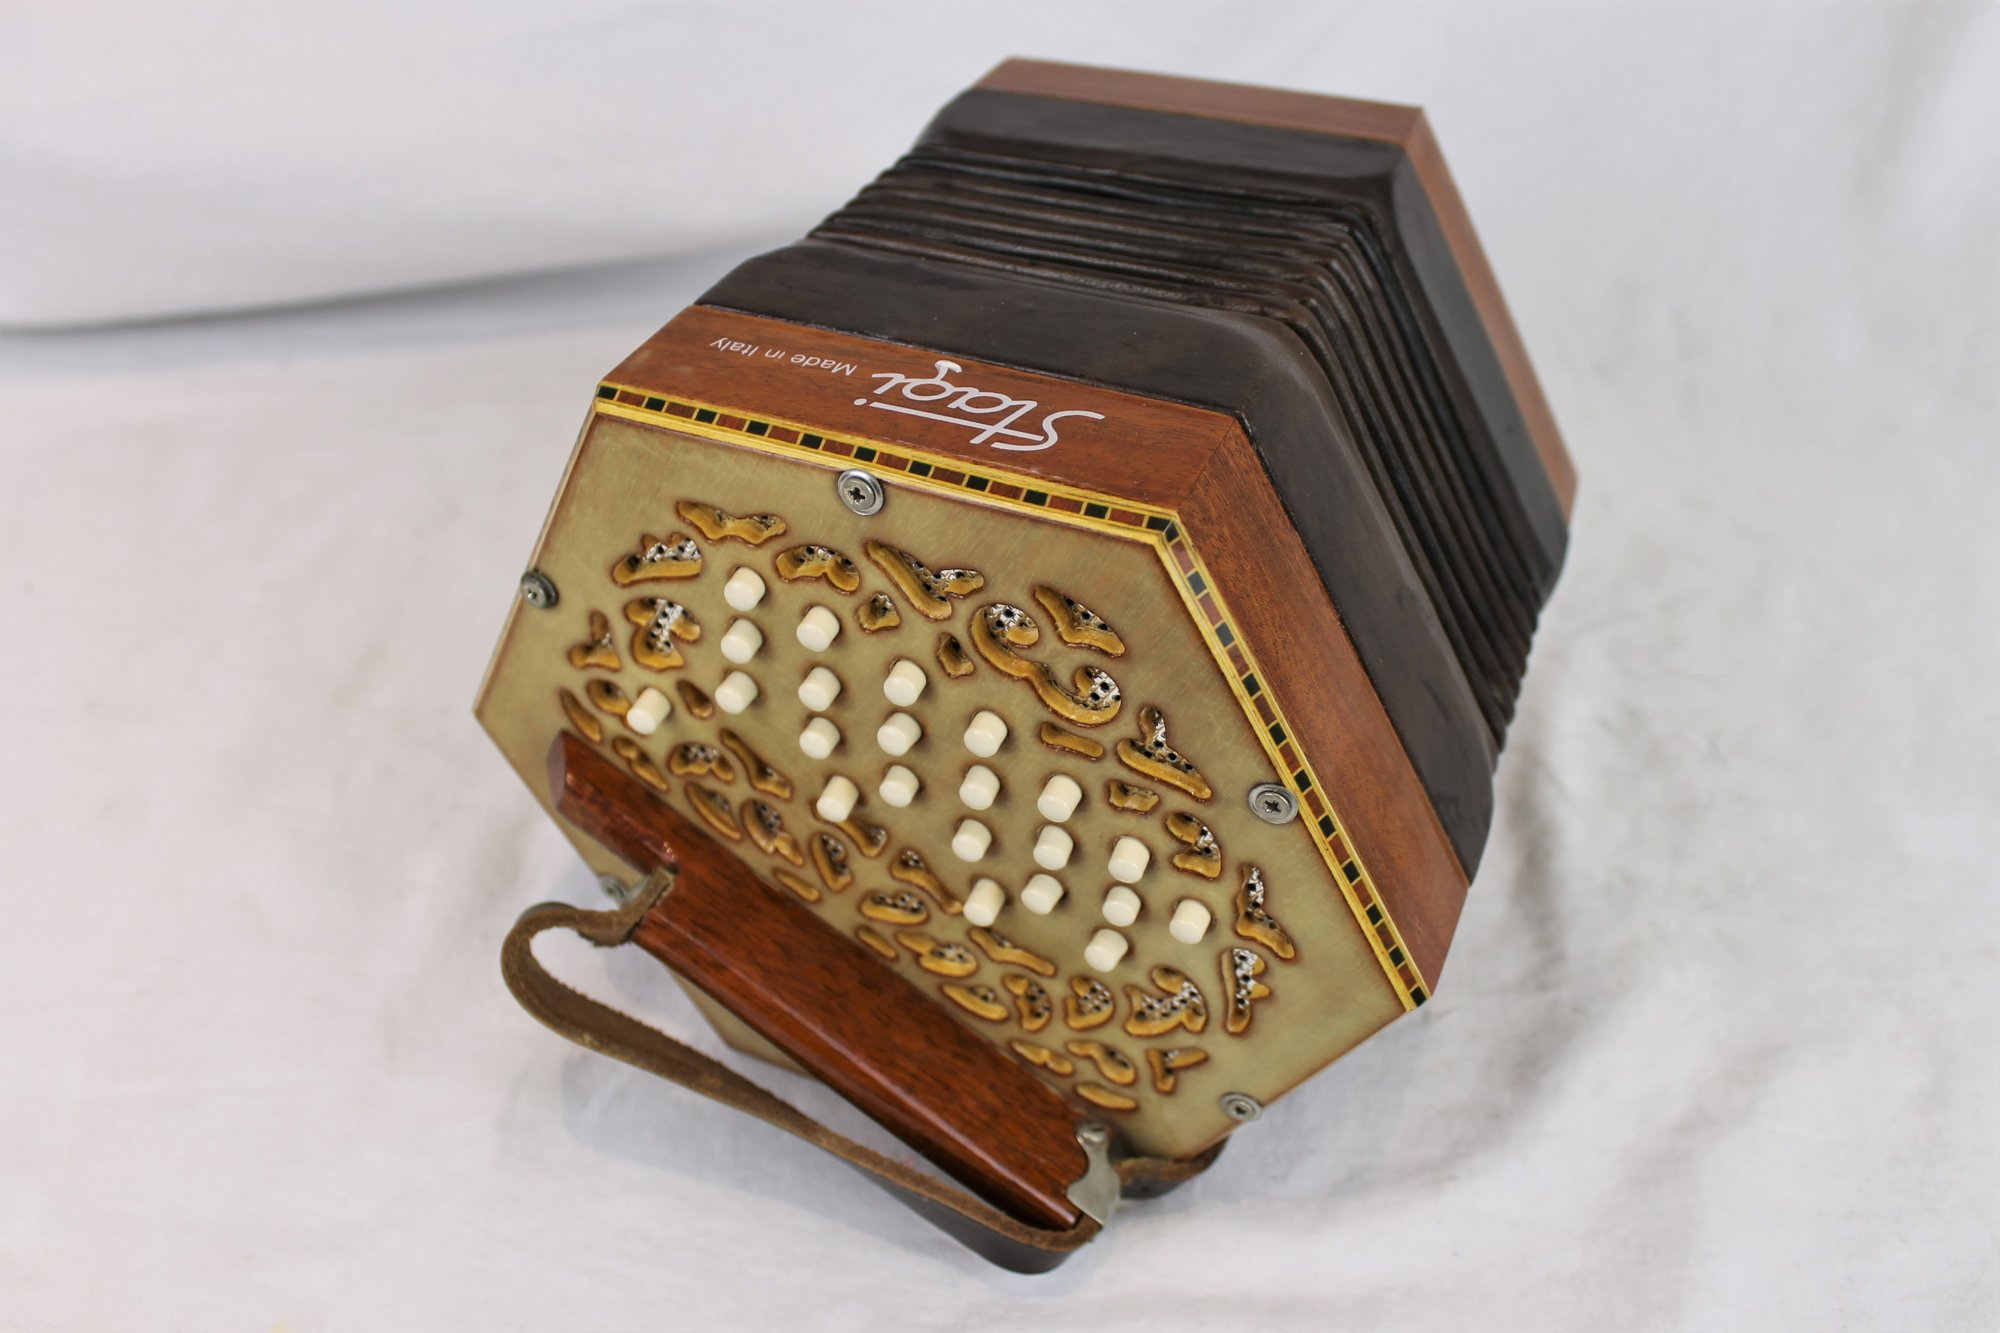 4736 - Frosted Mahogany Stagi W-40-MS Anglo Concertina CG M 40